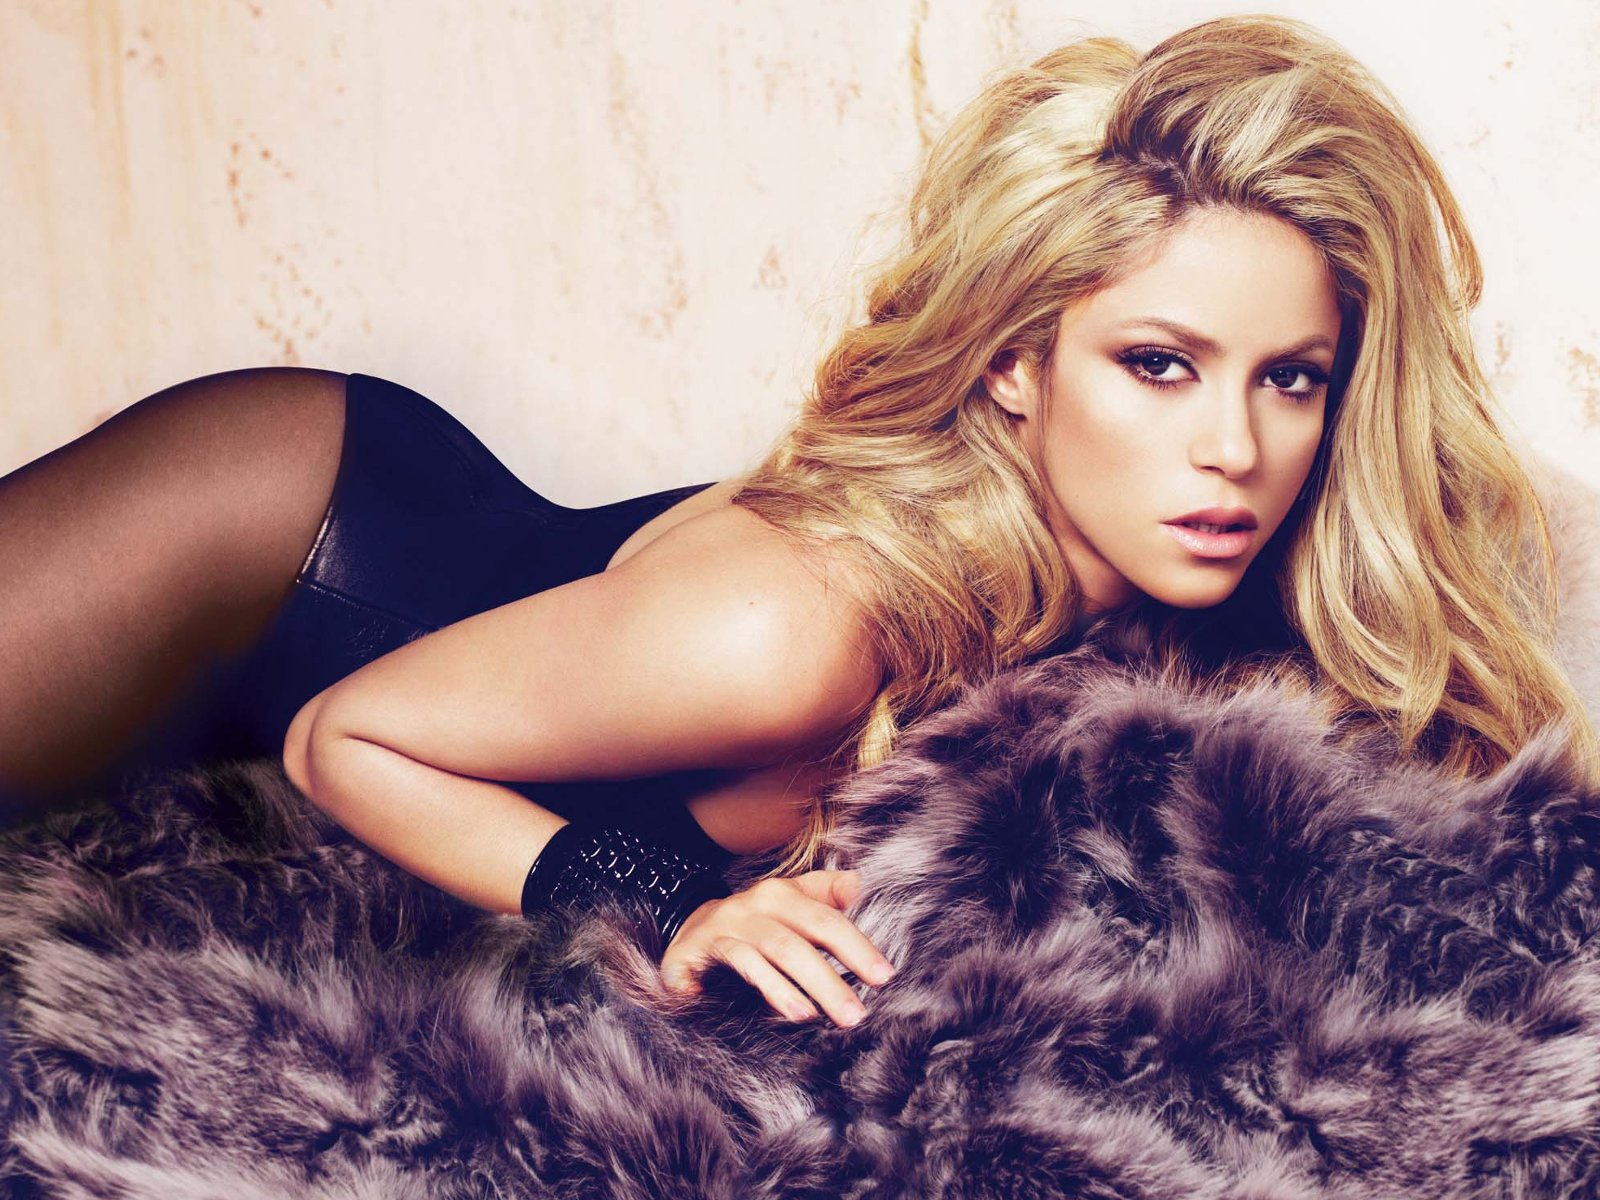 Shakira en corset et collants